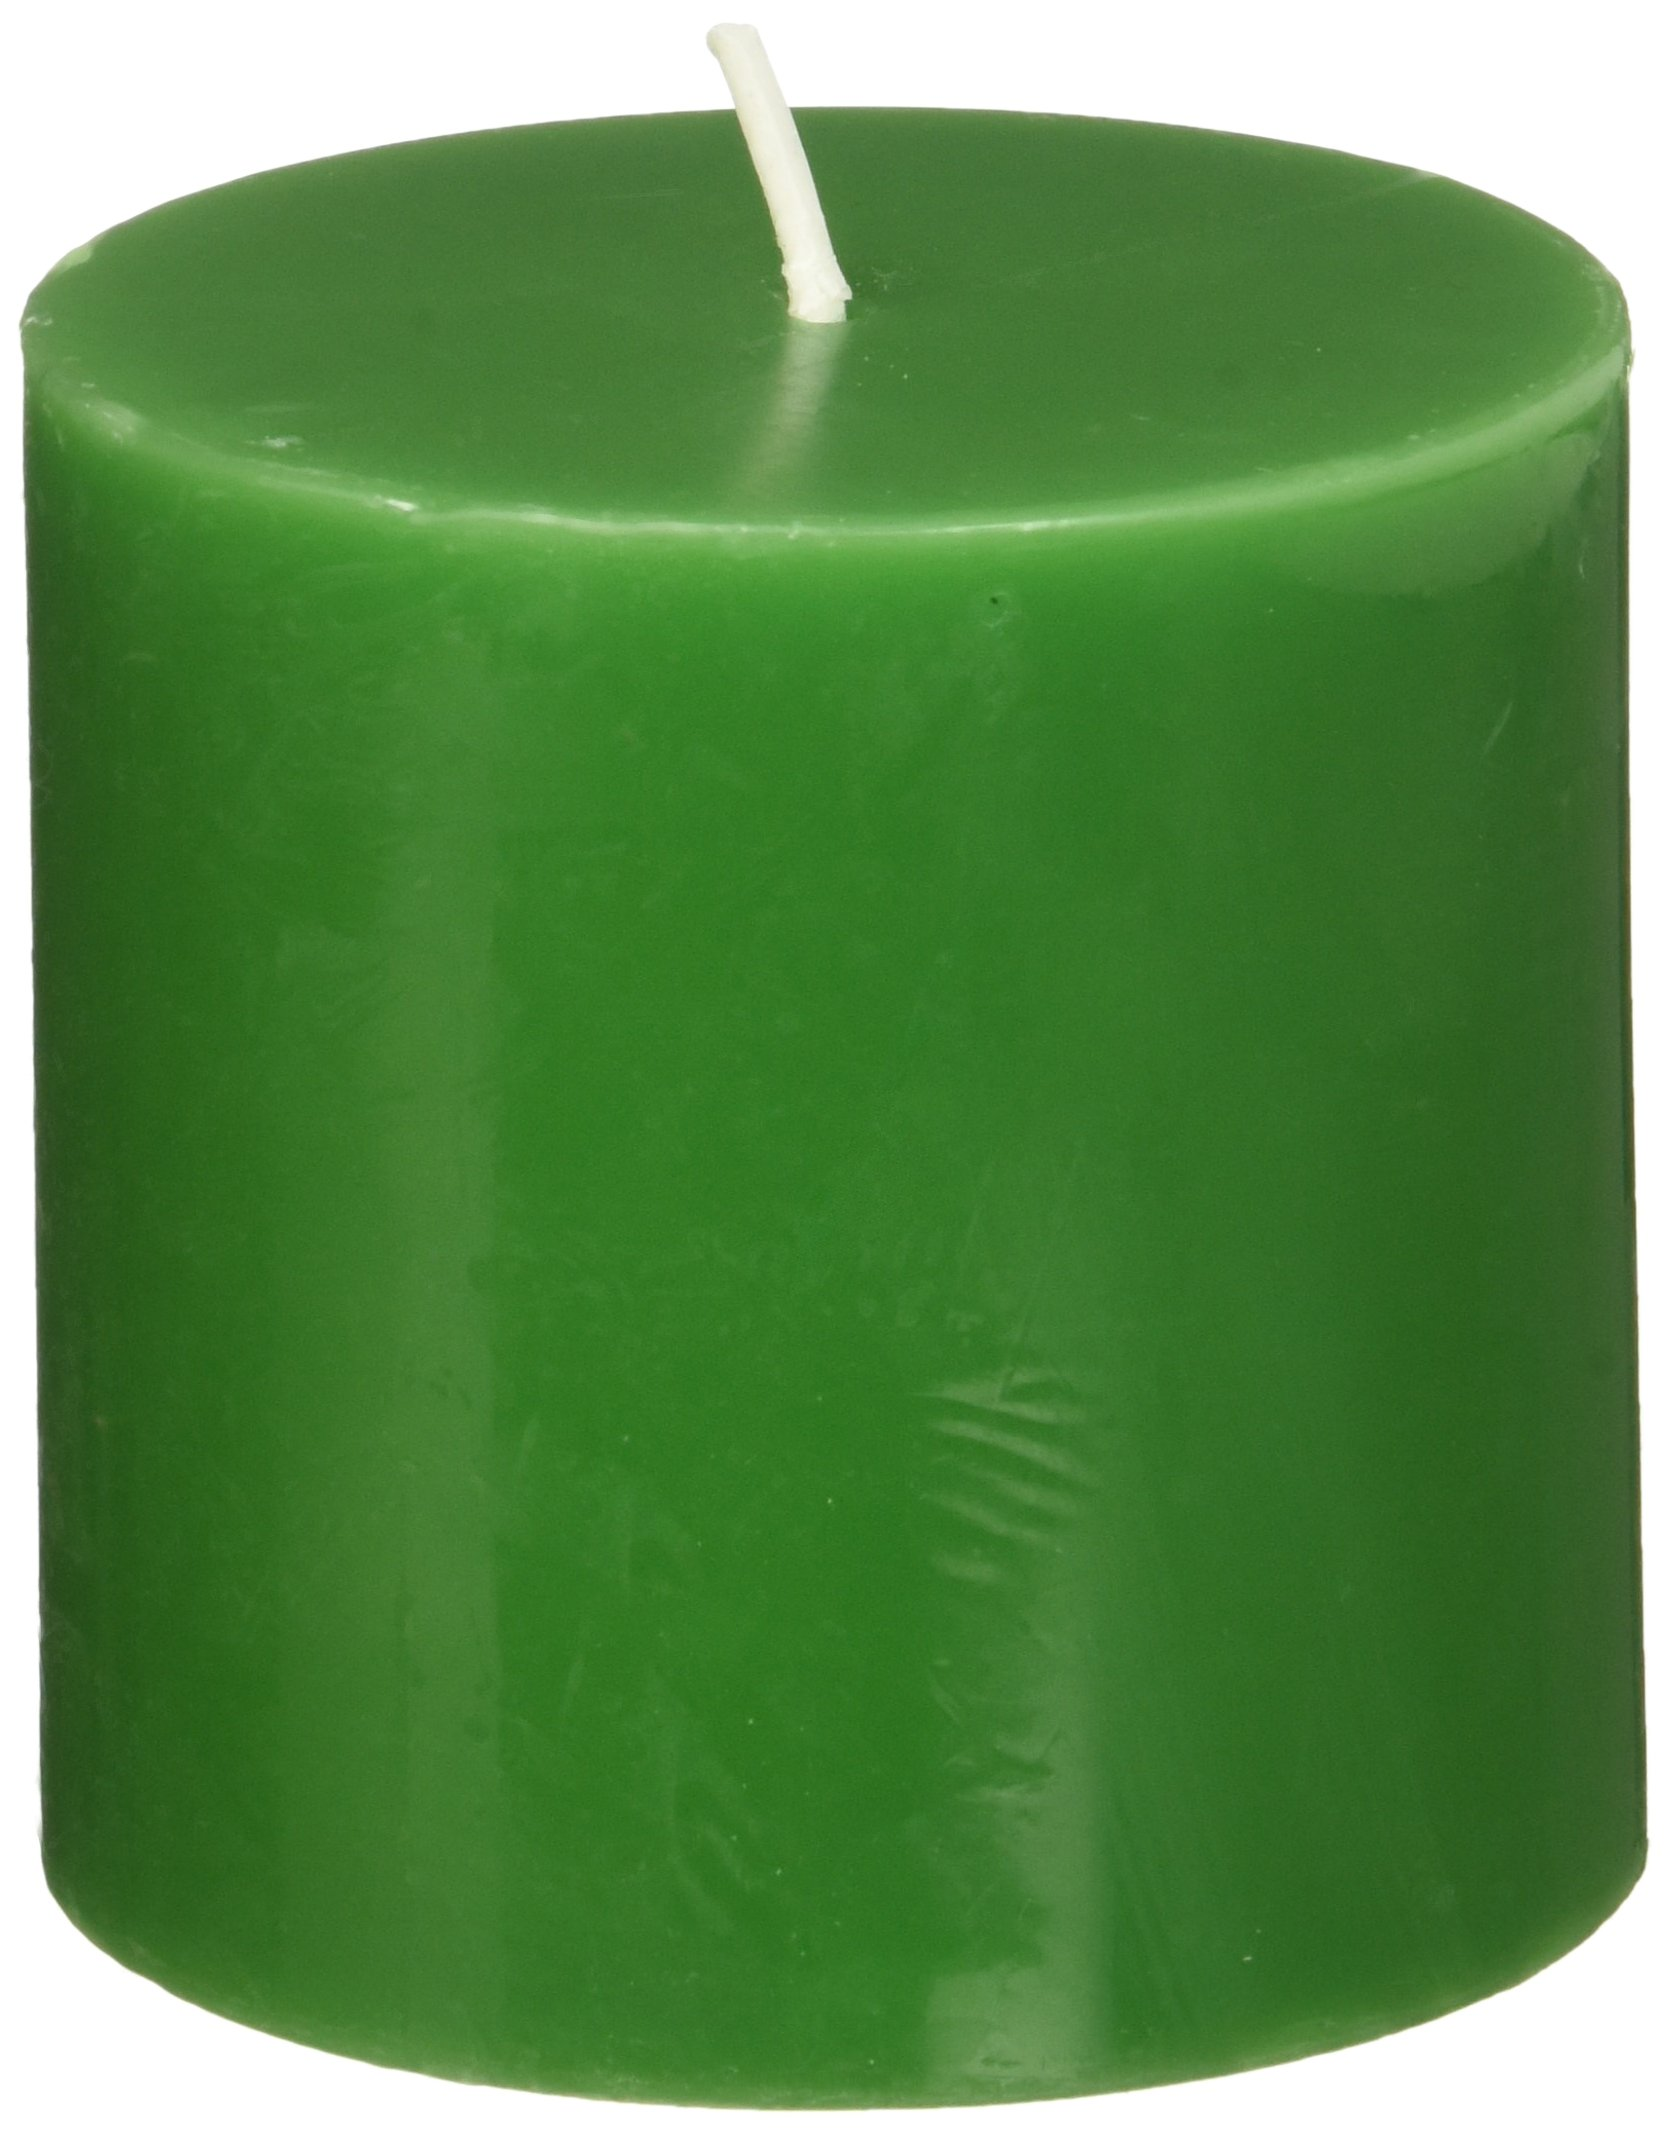 Customizable Fragrance /& Size Candles Energy Pillar Candle Green 2x63x33x43x64x6 Natural Palm Wax Crystallized Pattern